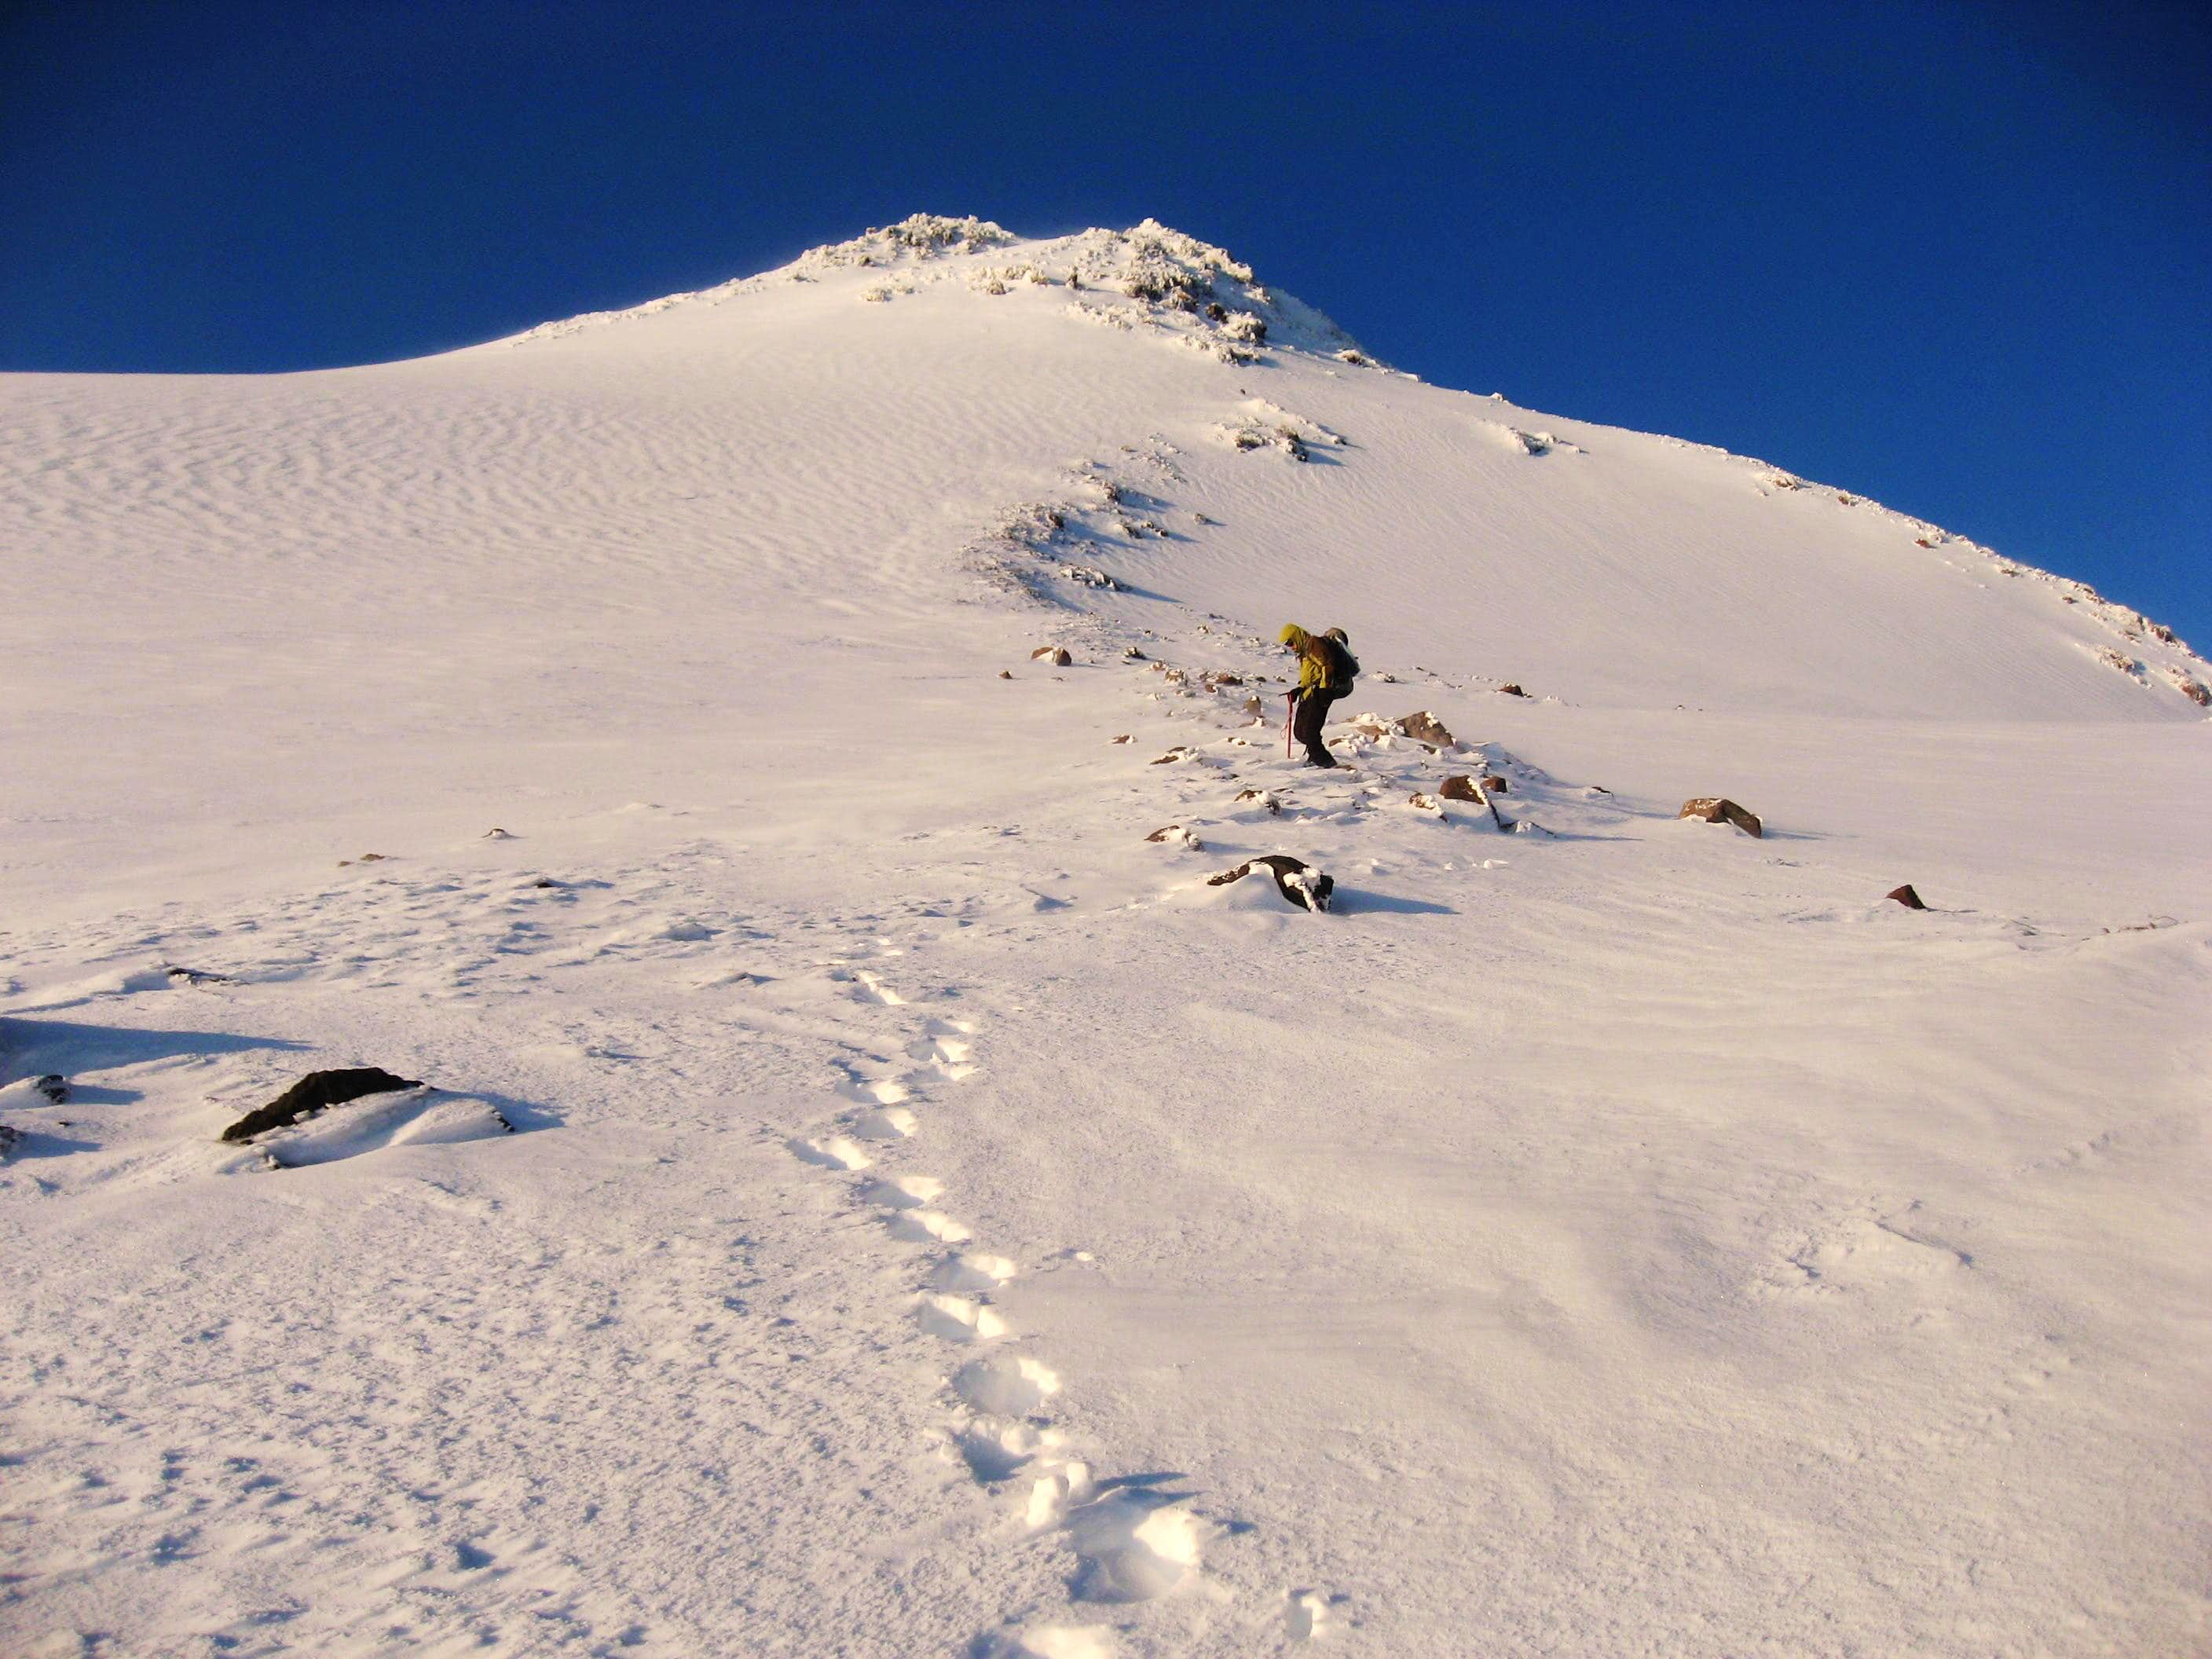 Mt Shasta Summit via Hotlum-Bolum Ridge